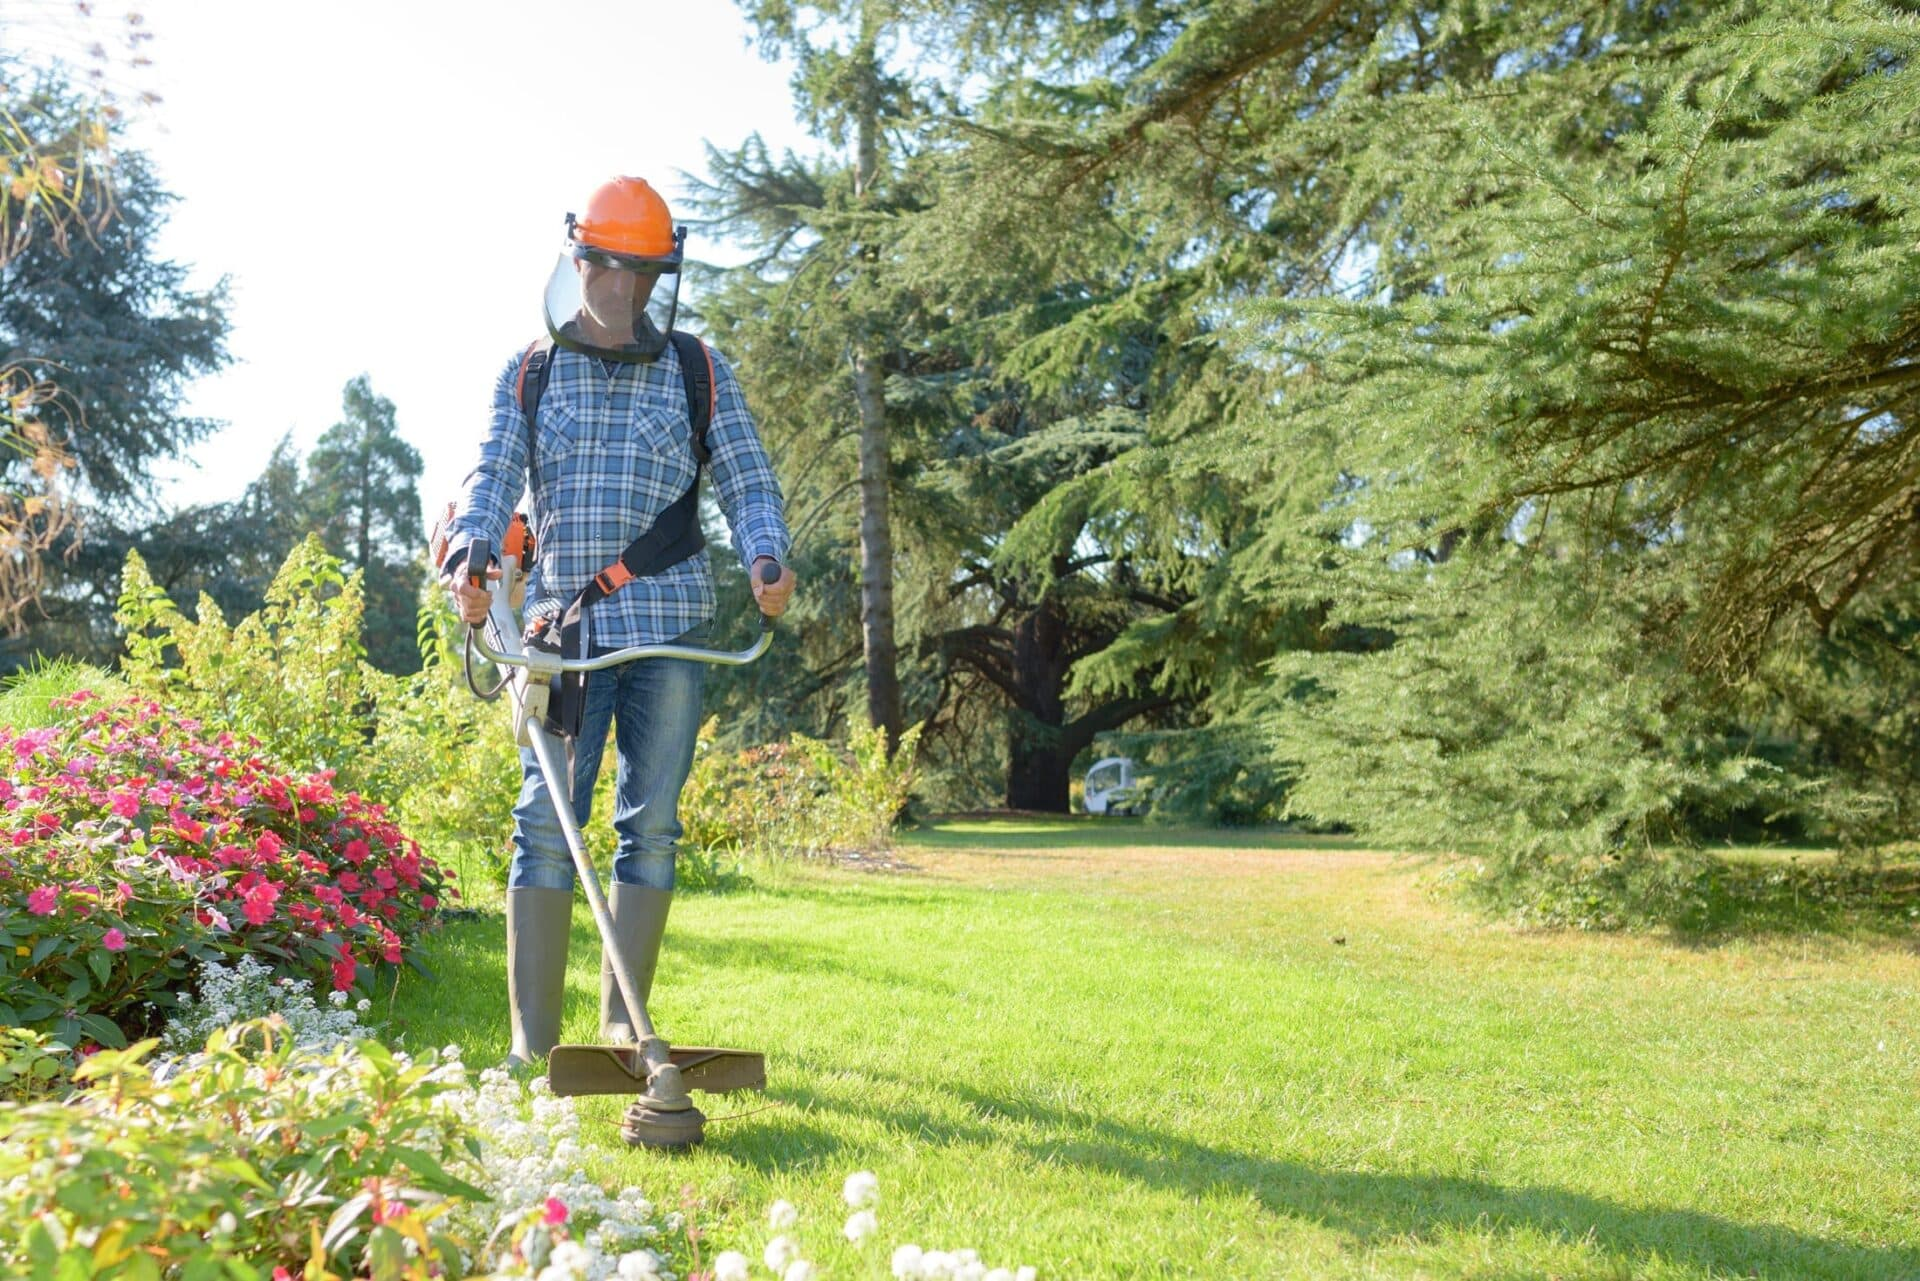 Man in gardening gear and visor performing grounds maintenance with professional lawn mowing tools